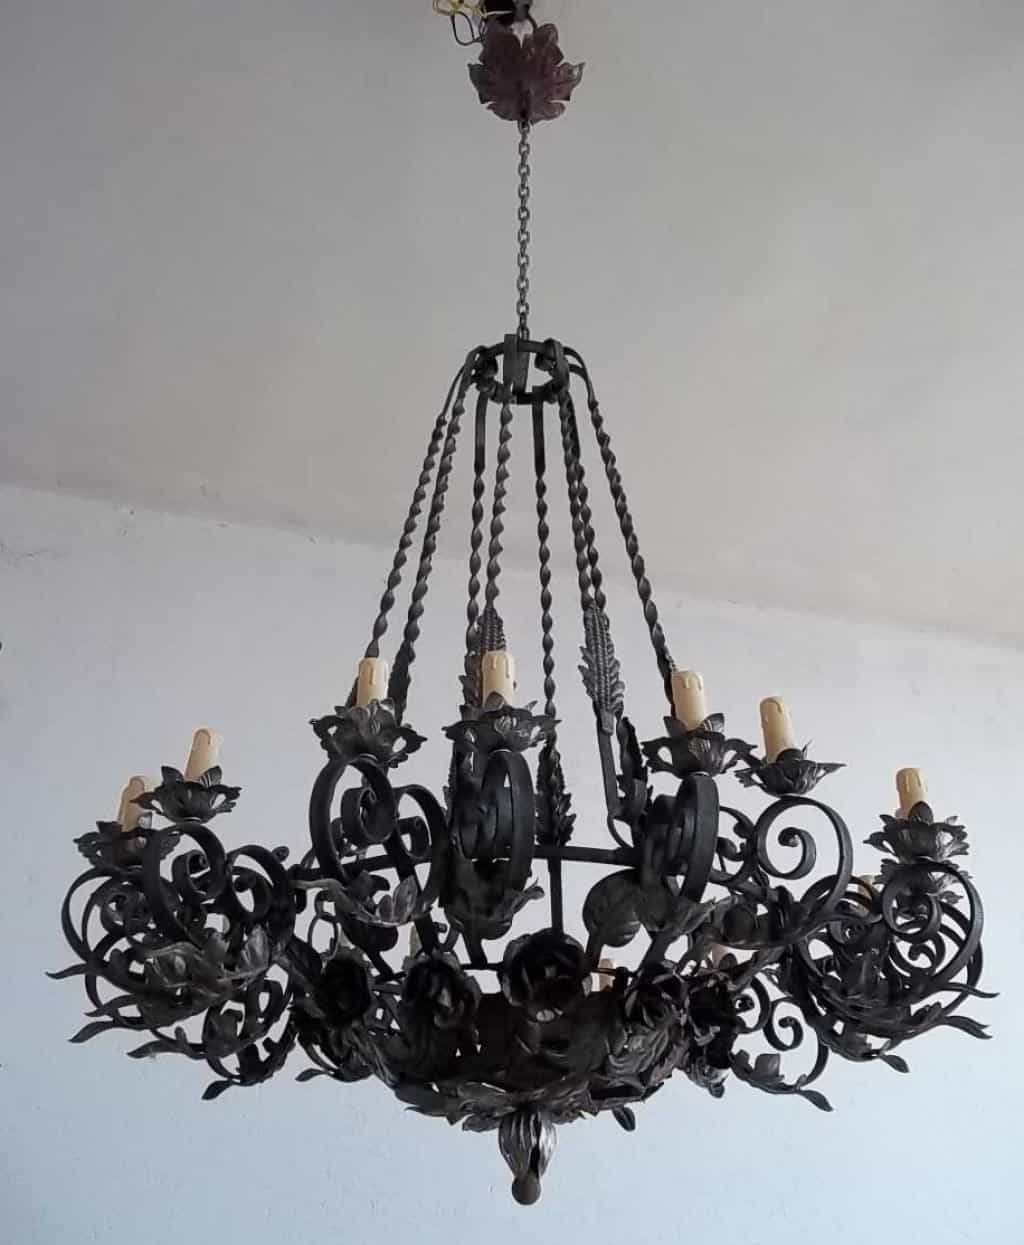 Newest Wrought Iron Chandeliers In Black Vintage Wrought Iron Chandelier Hung In The White Ceiling (View 10 of 20)